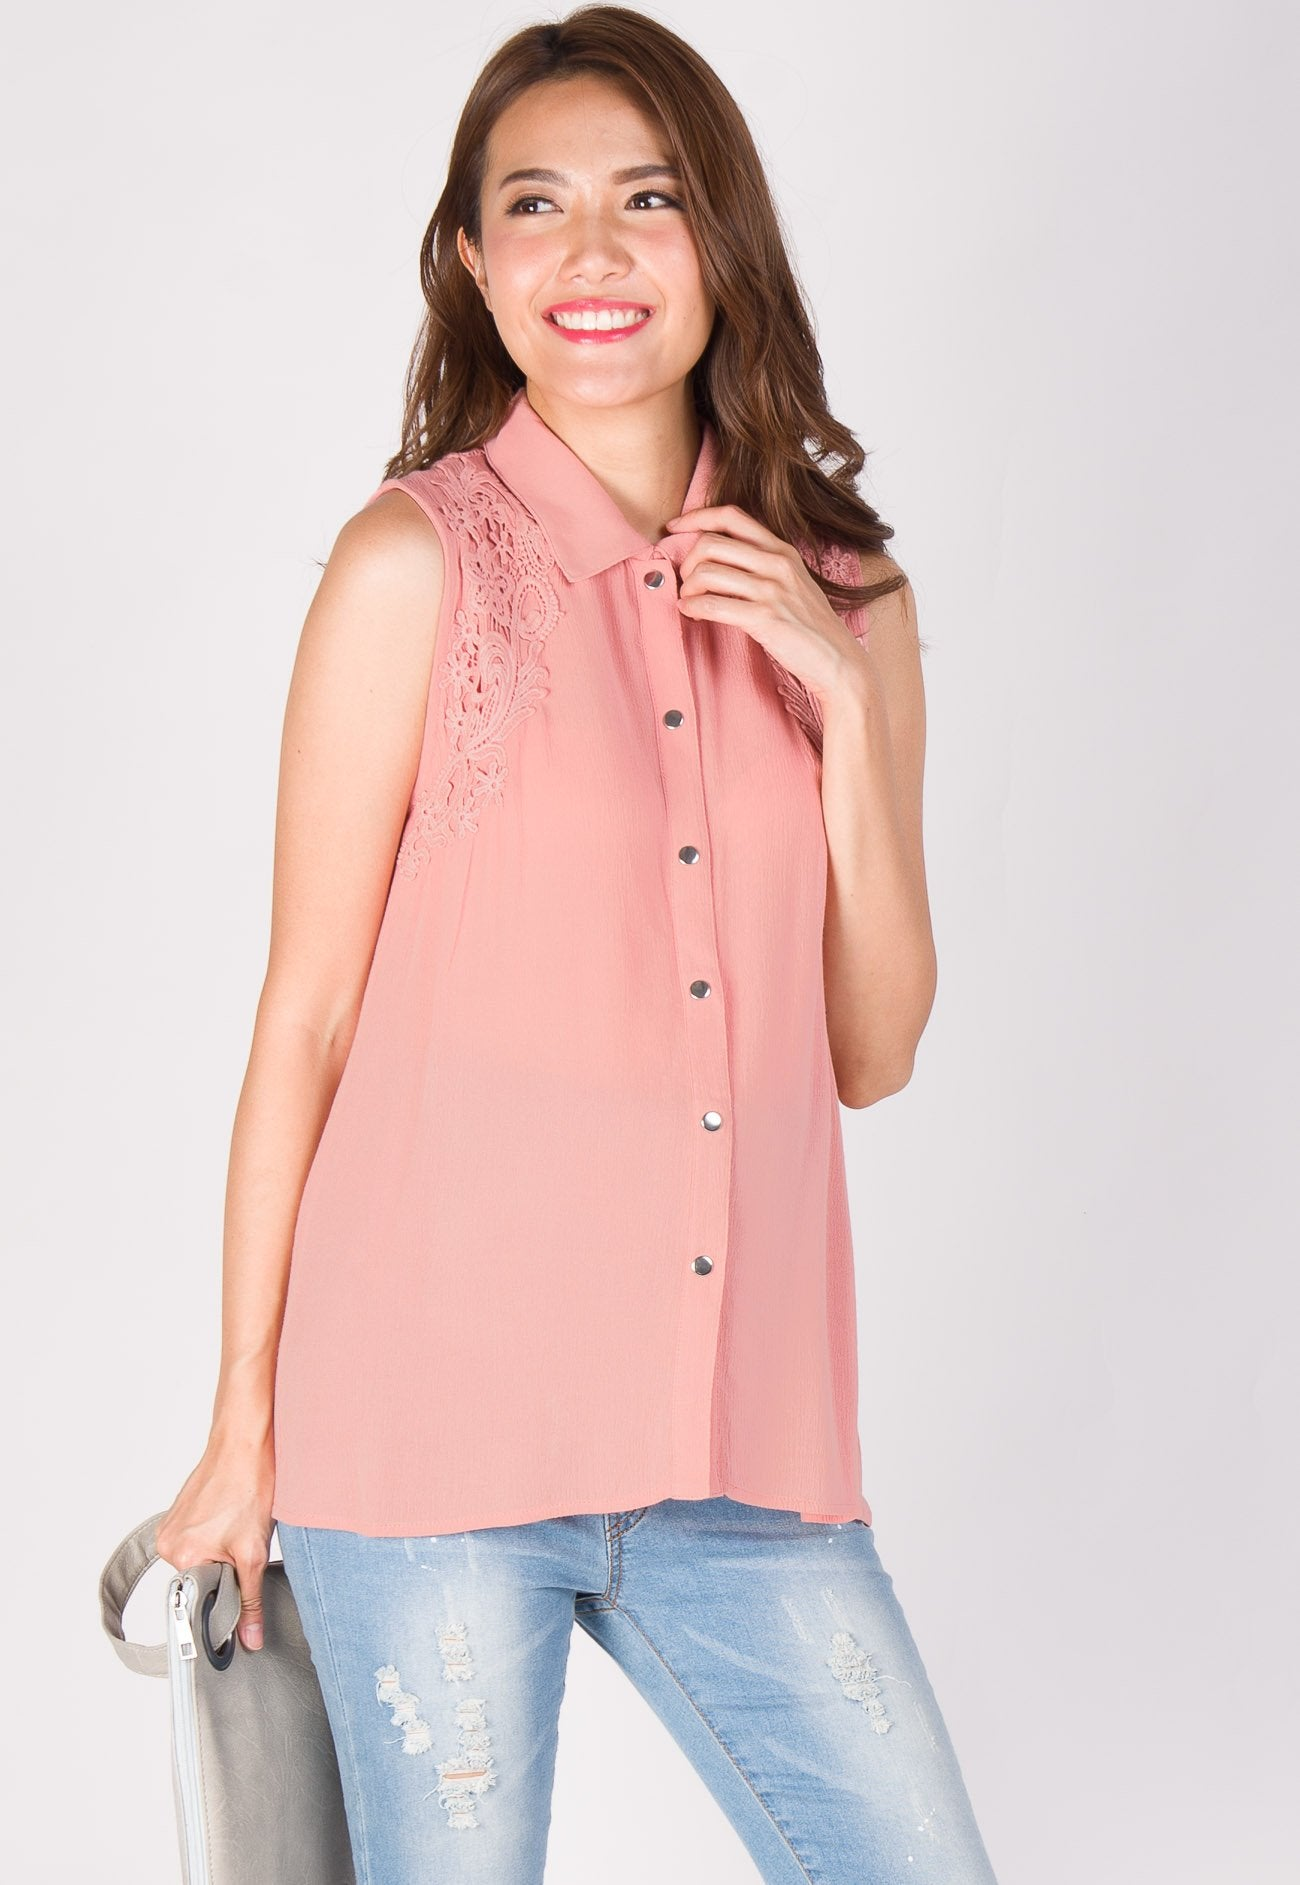 Lace Applique Nursing Blouse  by Jump Eat Cry - Maternity and nursing wear